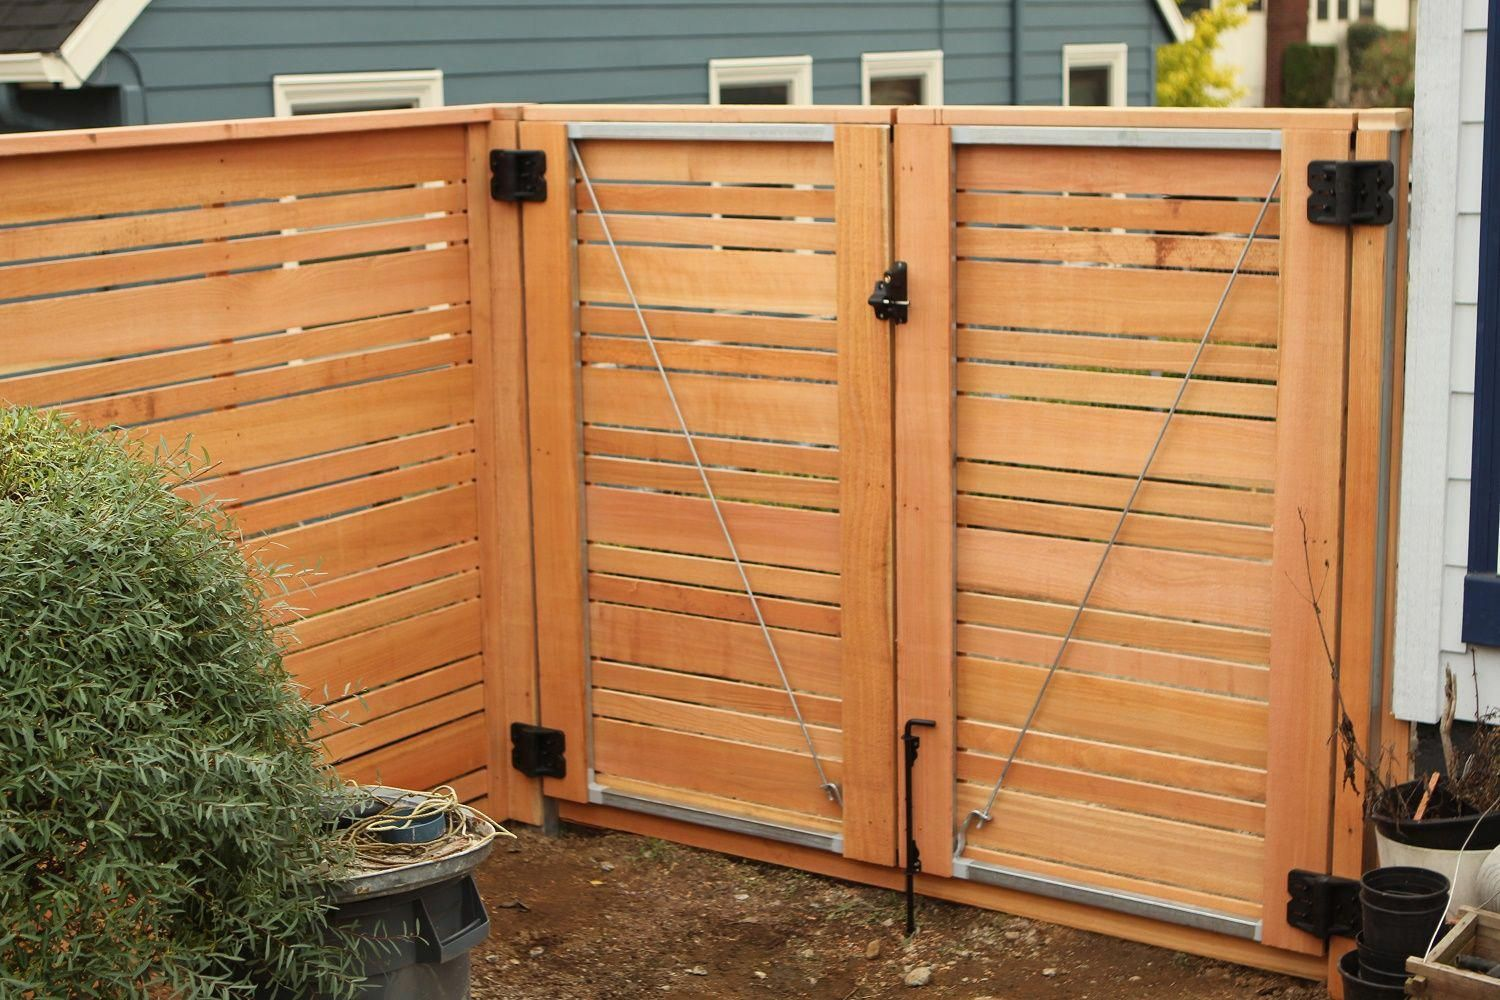 Double Door Gate Horizontal Wood Fence With Alternating Picket Sizes For An Extra Unique Look Cedar Fences Modern Home Wood Fence Gates Modern Wood Fence Fence Design